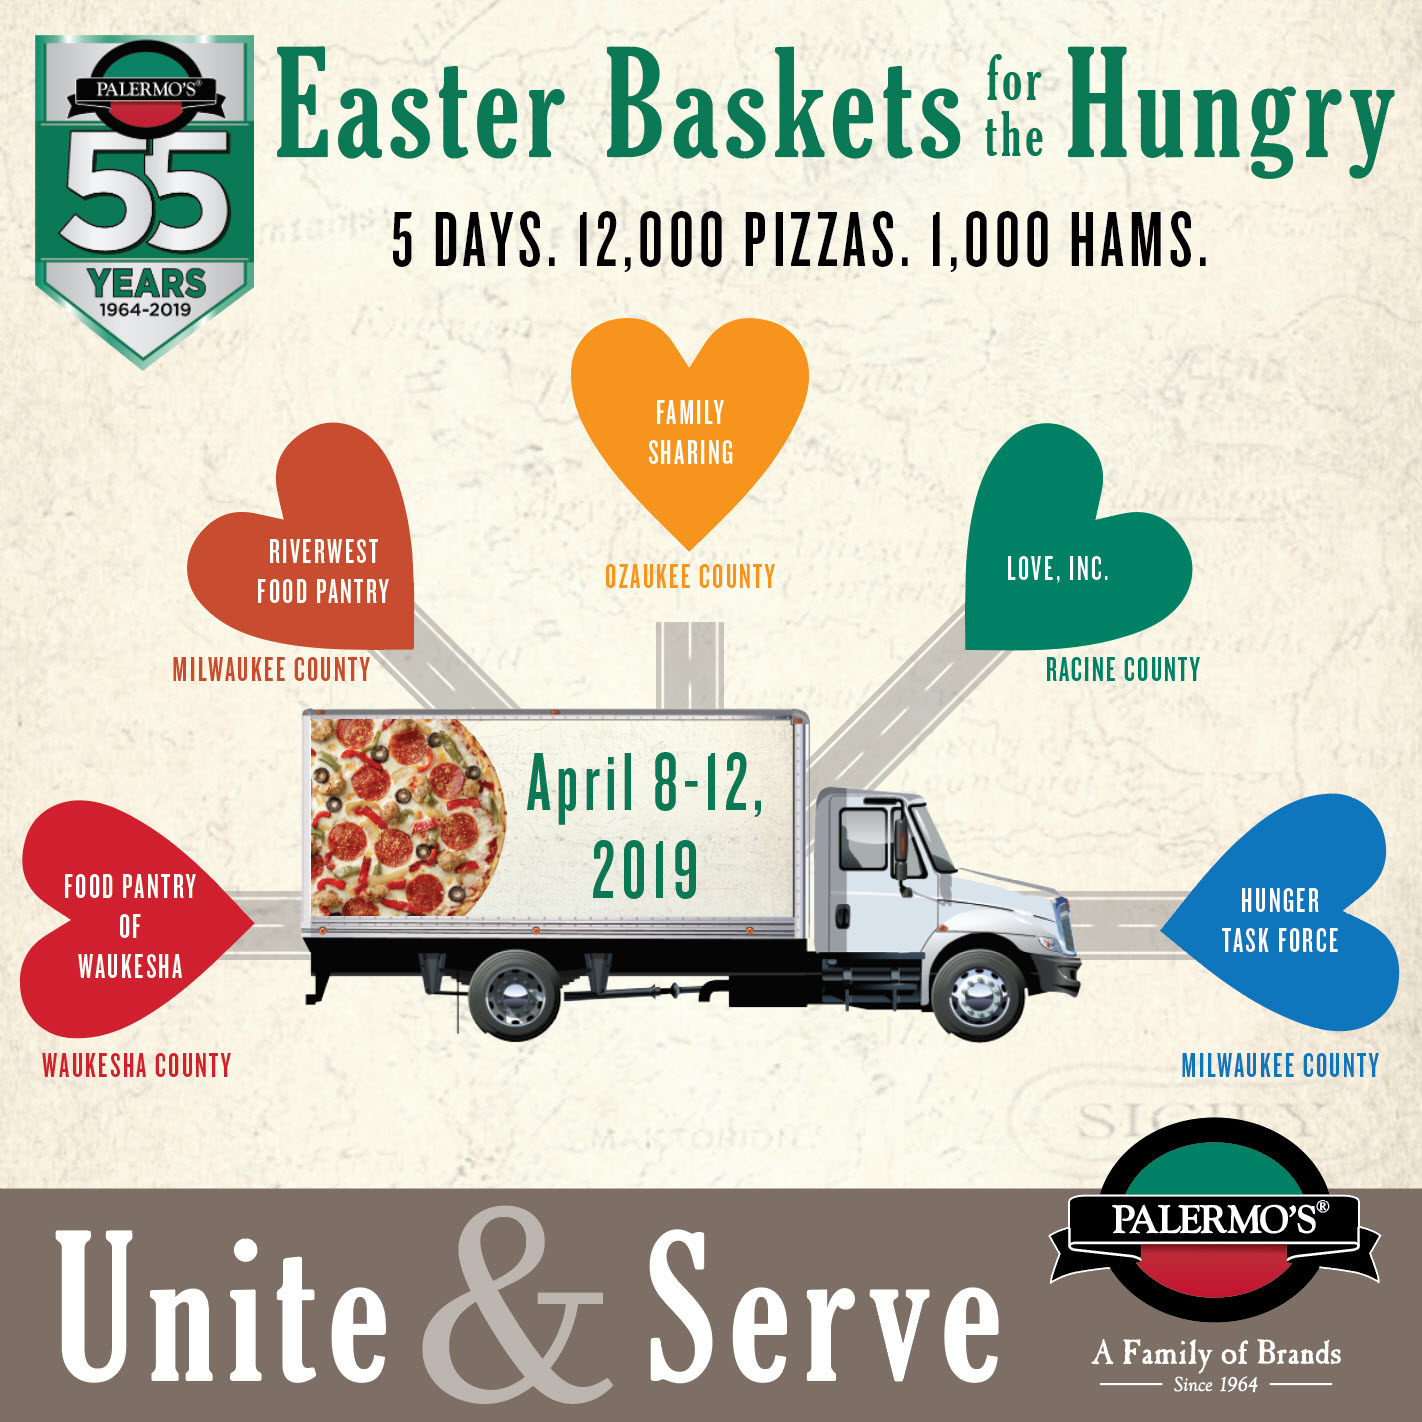 PALERMO'S PIZZA TO HOLD 12TH ANNUAL EASTER BASKETS FOR THE HUNGRY FOOD DISTRIBUTION